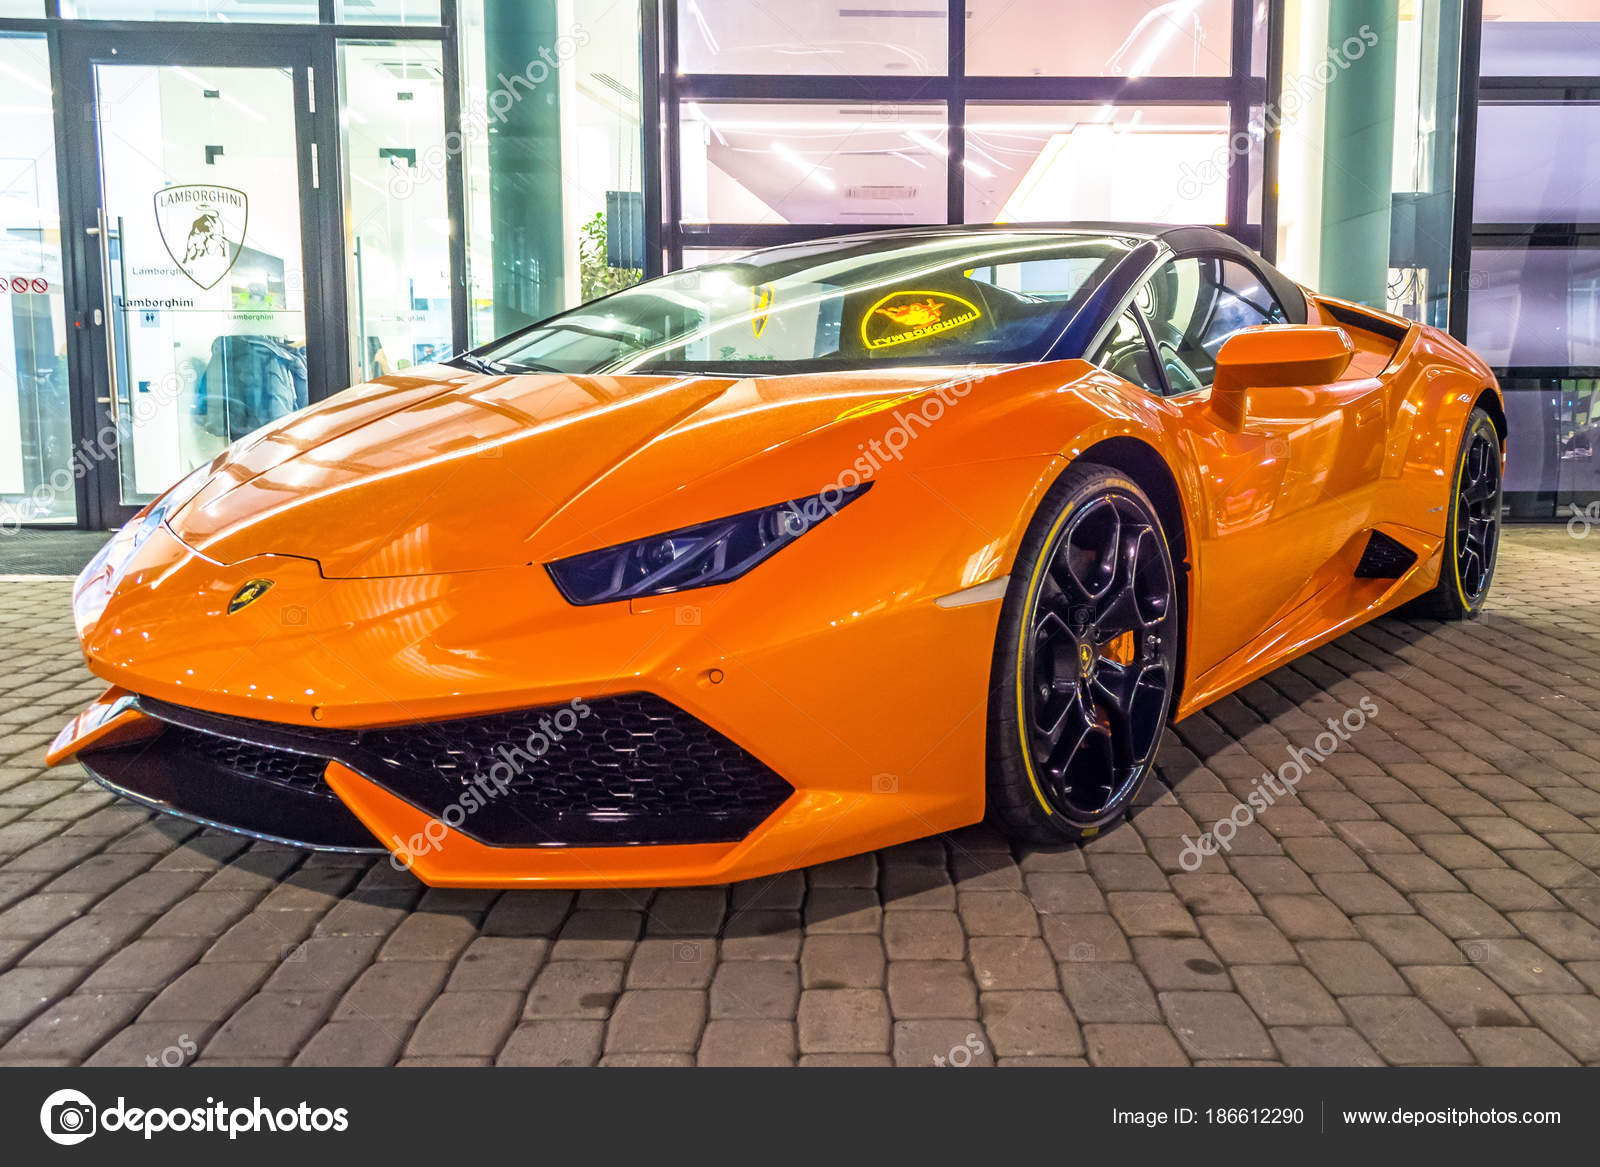 Supercar Lamborghini Huracan Orange Color Parked At The Car